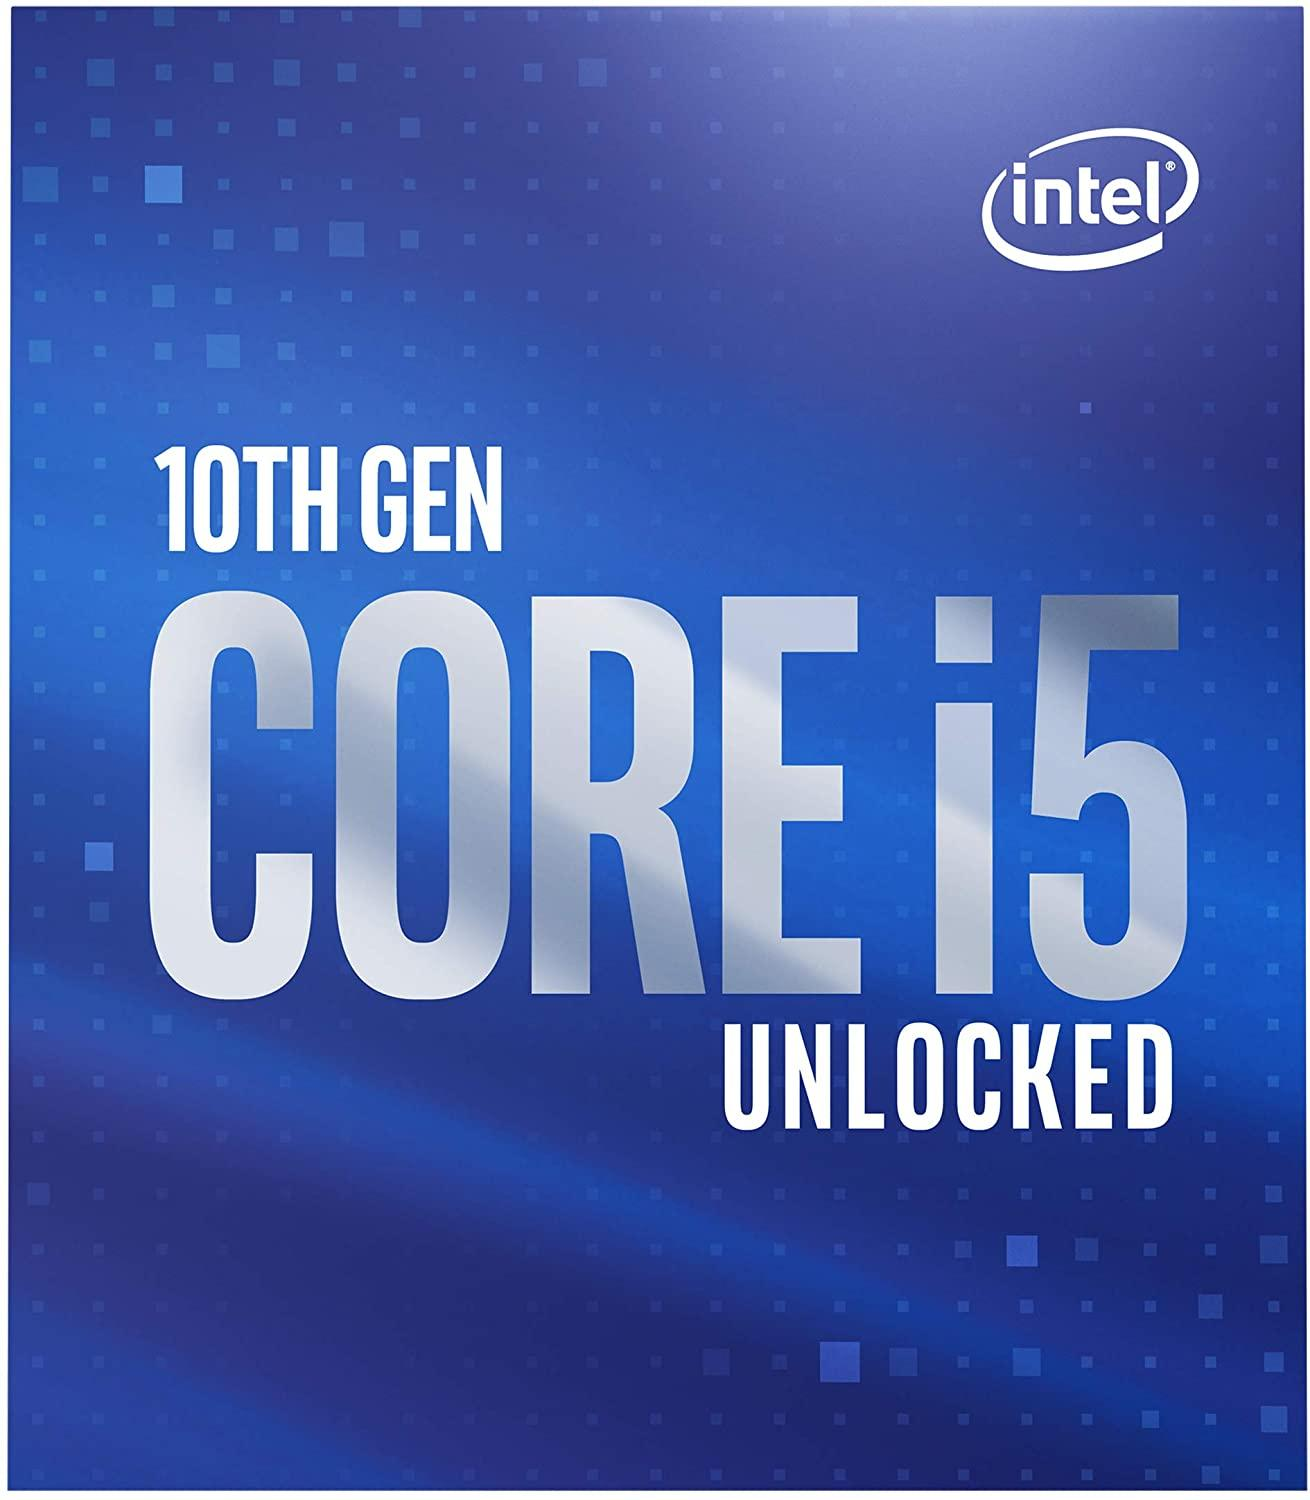 Процесор Intel Comet Lake-S Core I5-10600K 6 cores 4.1Ghz (Up to 4.80Ghz) 12MB, 125W LGA1200, BOX